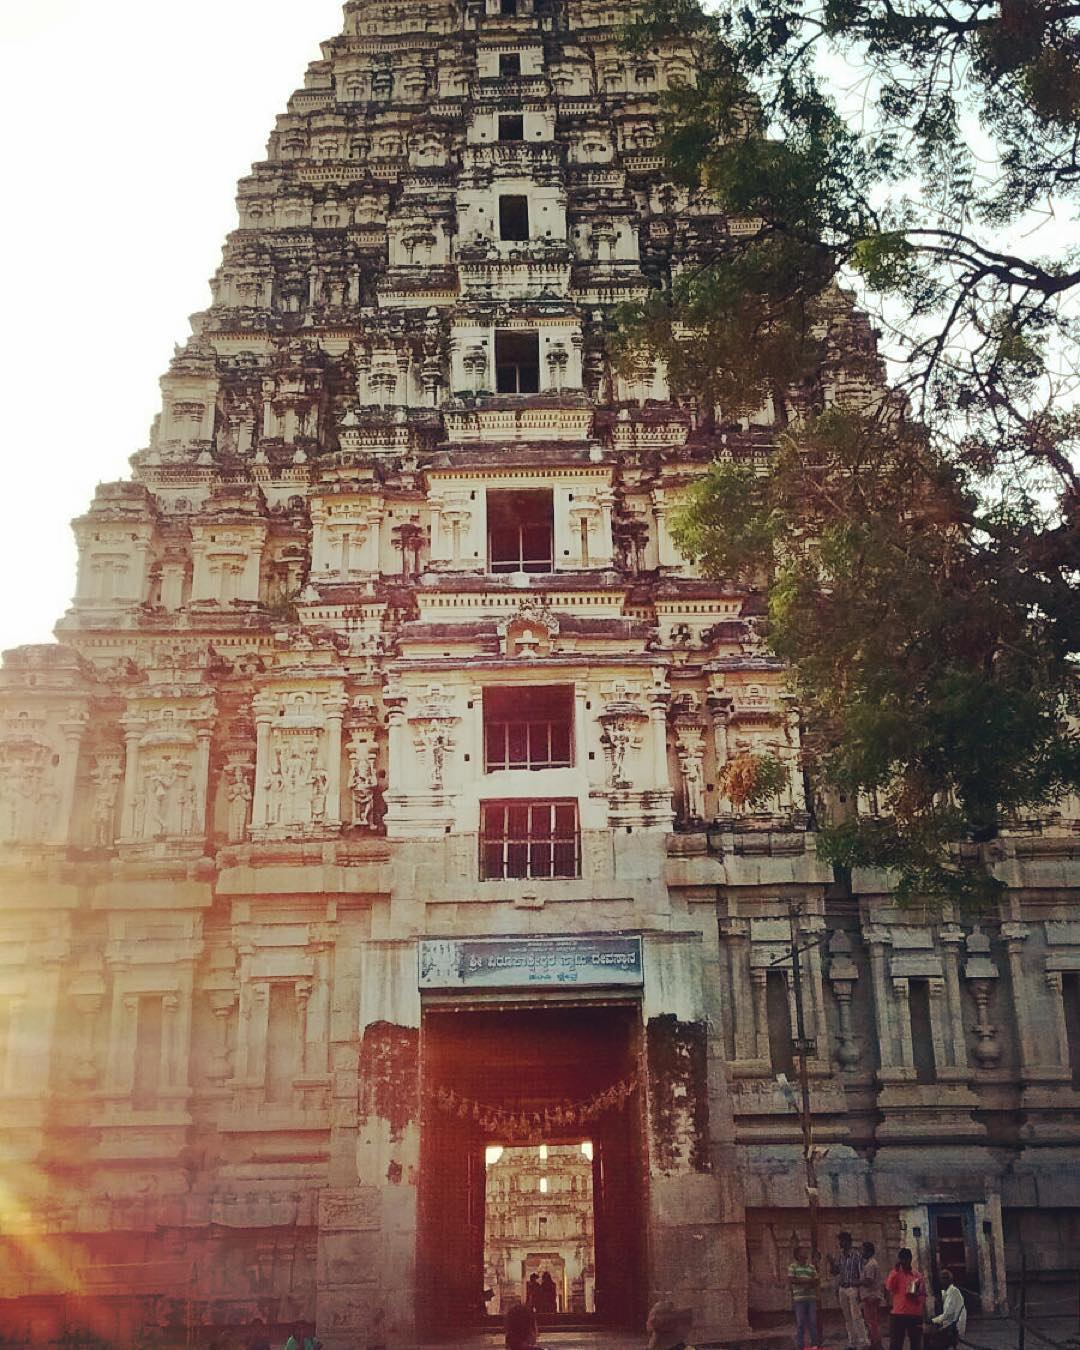 Absolutely beautiful Virupaksha temple